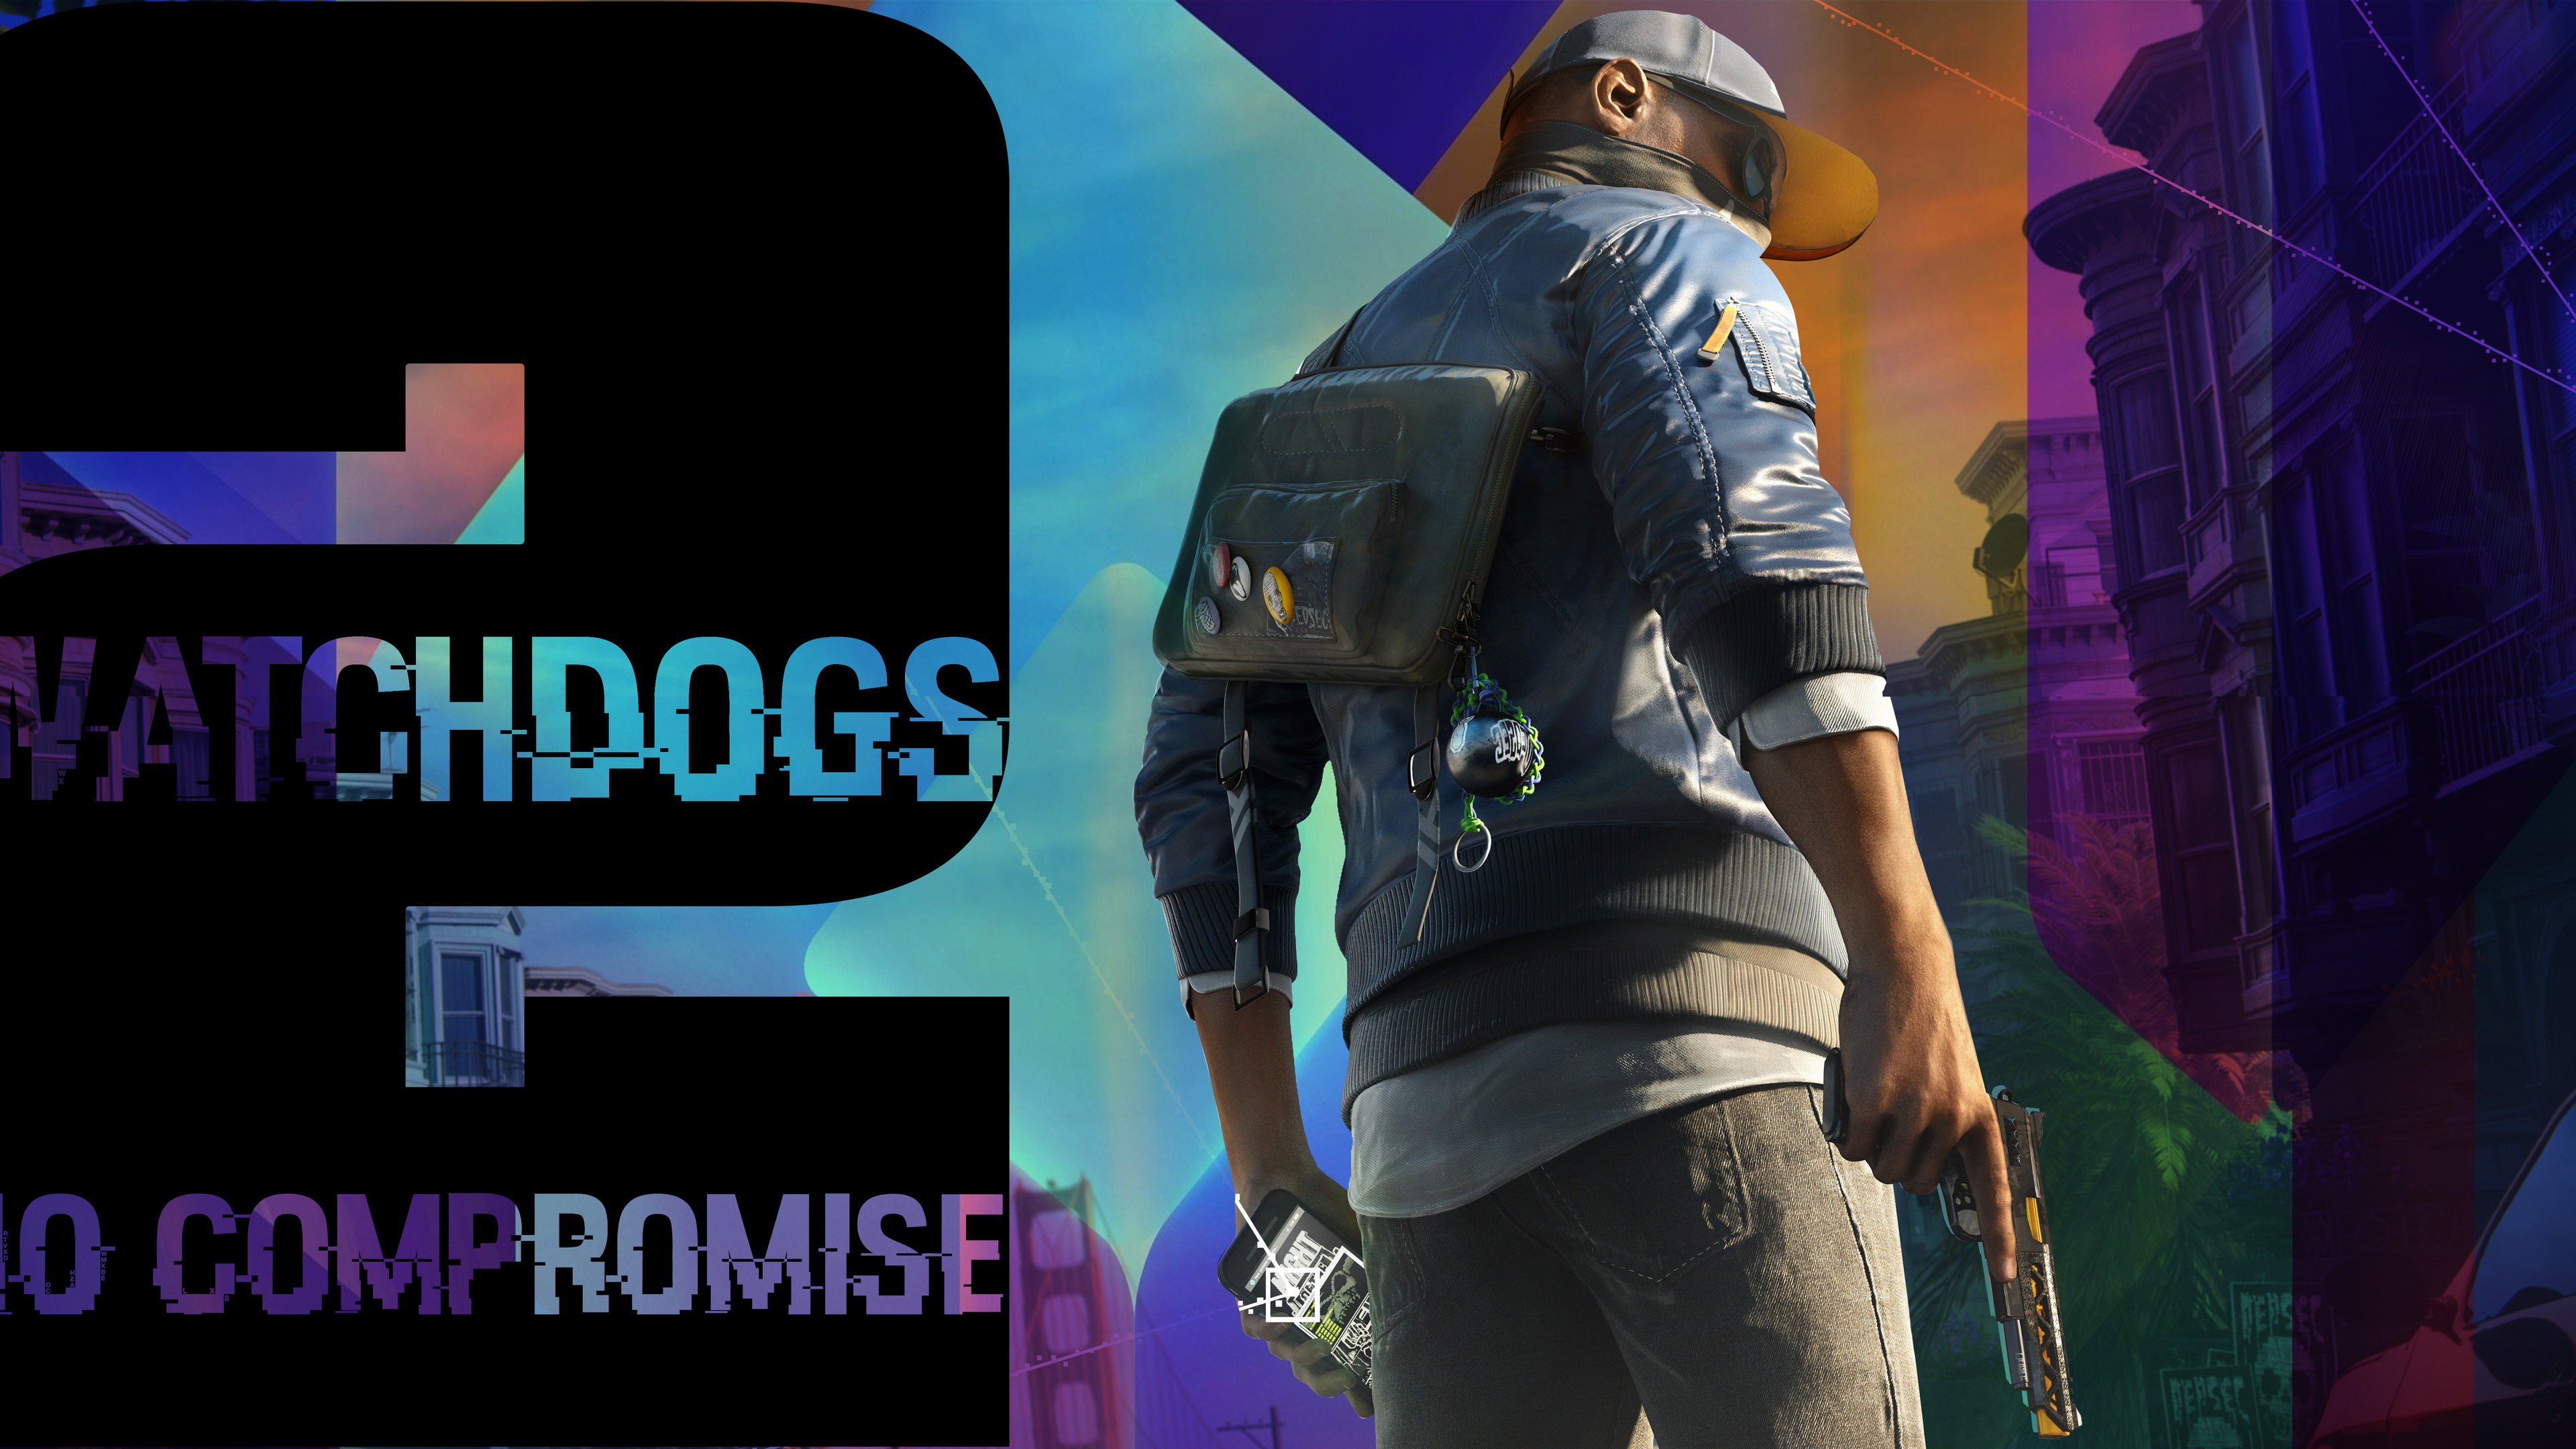 Wallpaper 4k Watch Dogs 2 No Compromise Dlc 4k 2018 Games Wallpapers